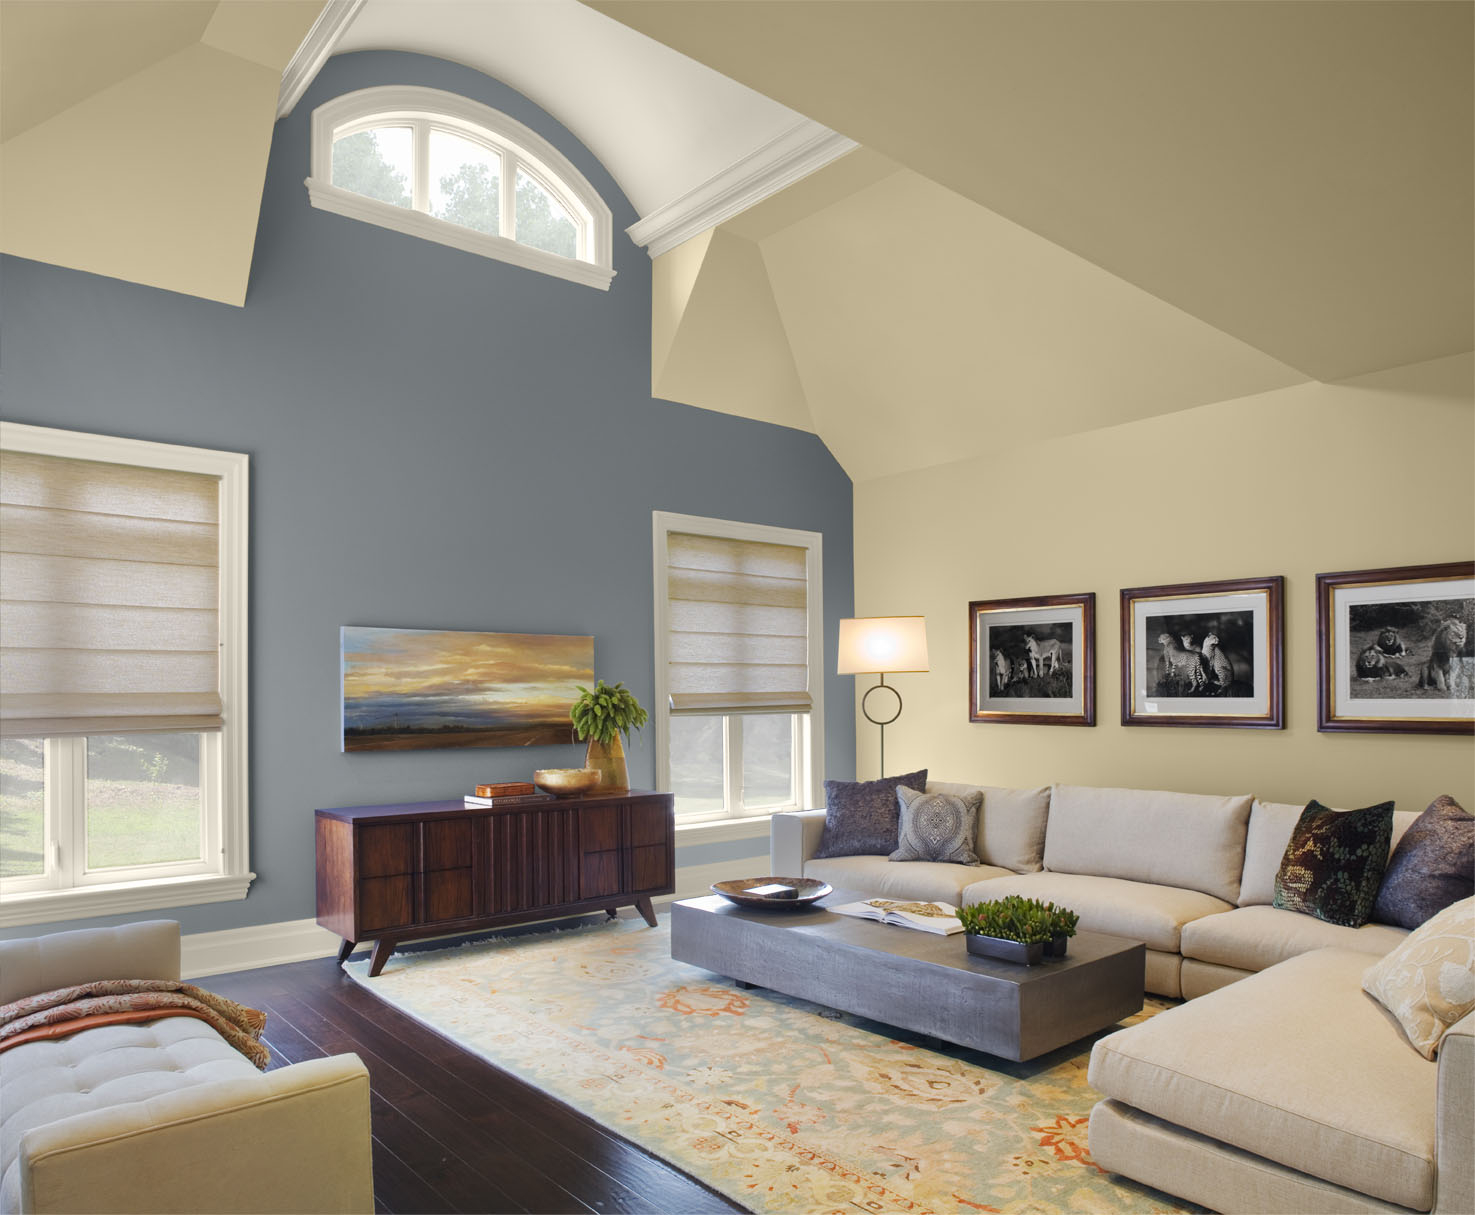 What Color To Paint Living Room Stunning With Paint Color Ideas for Living Room Walls Photo